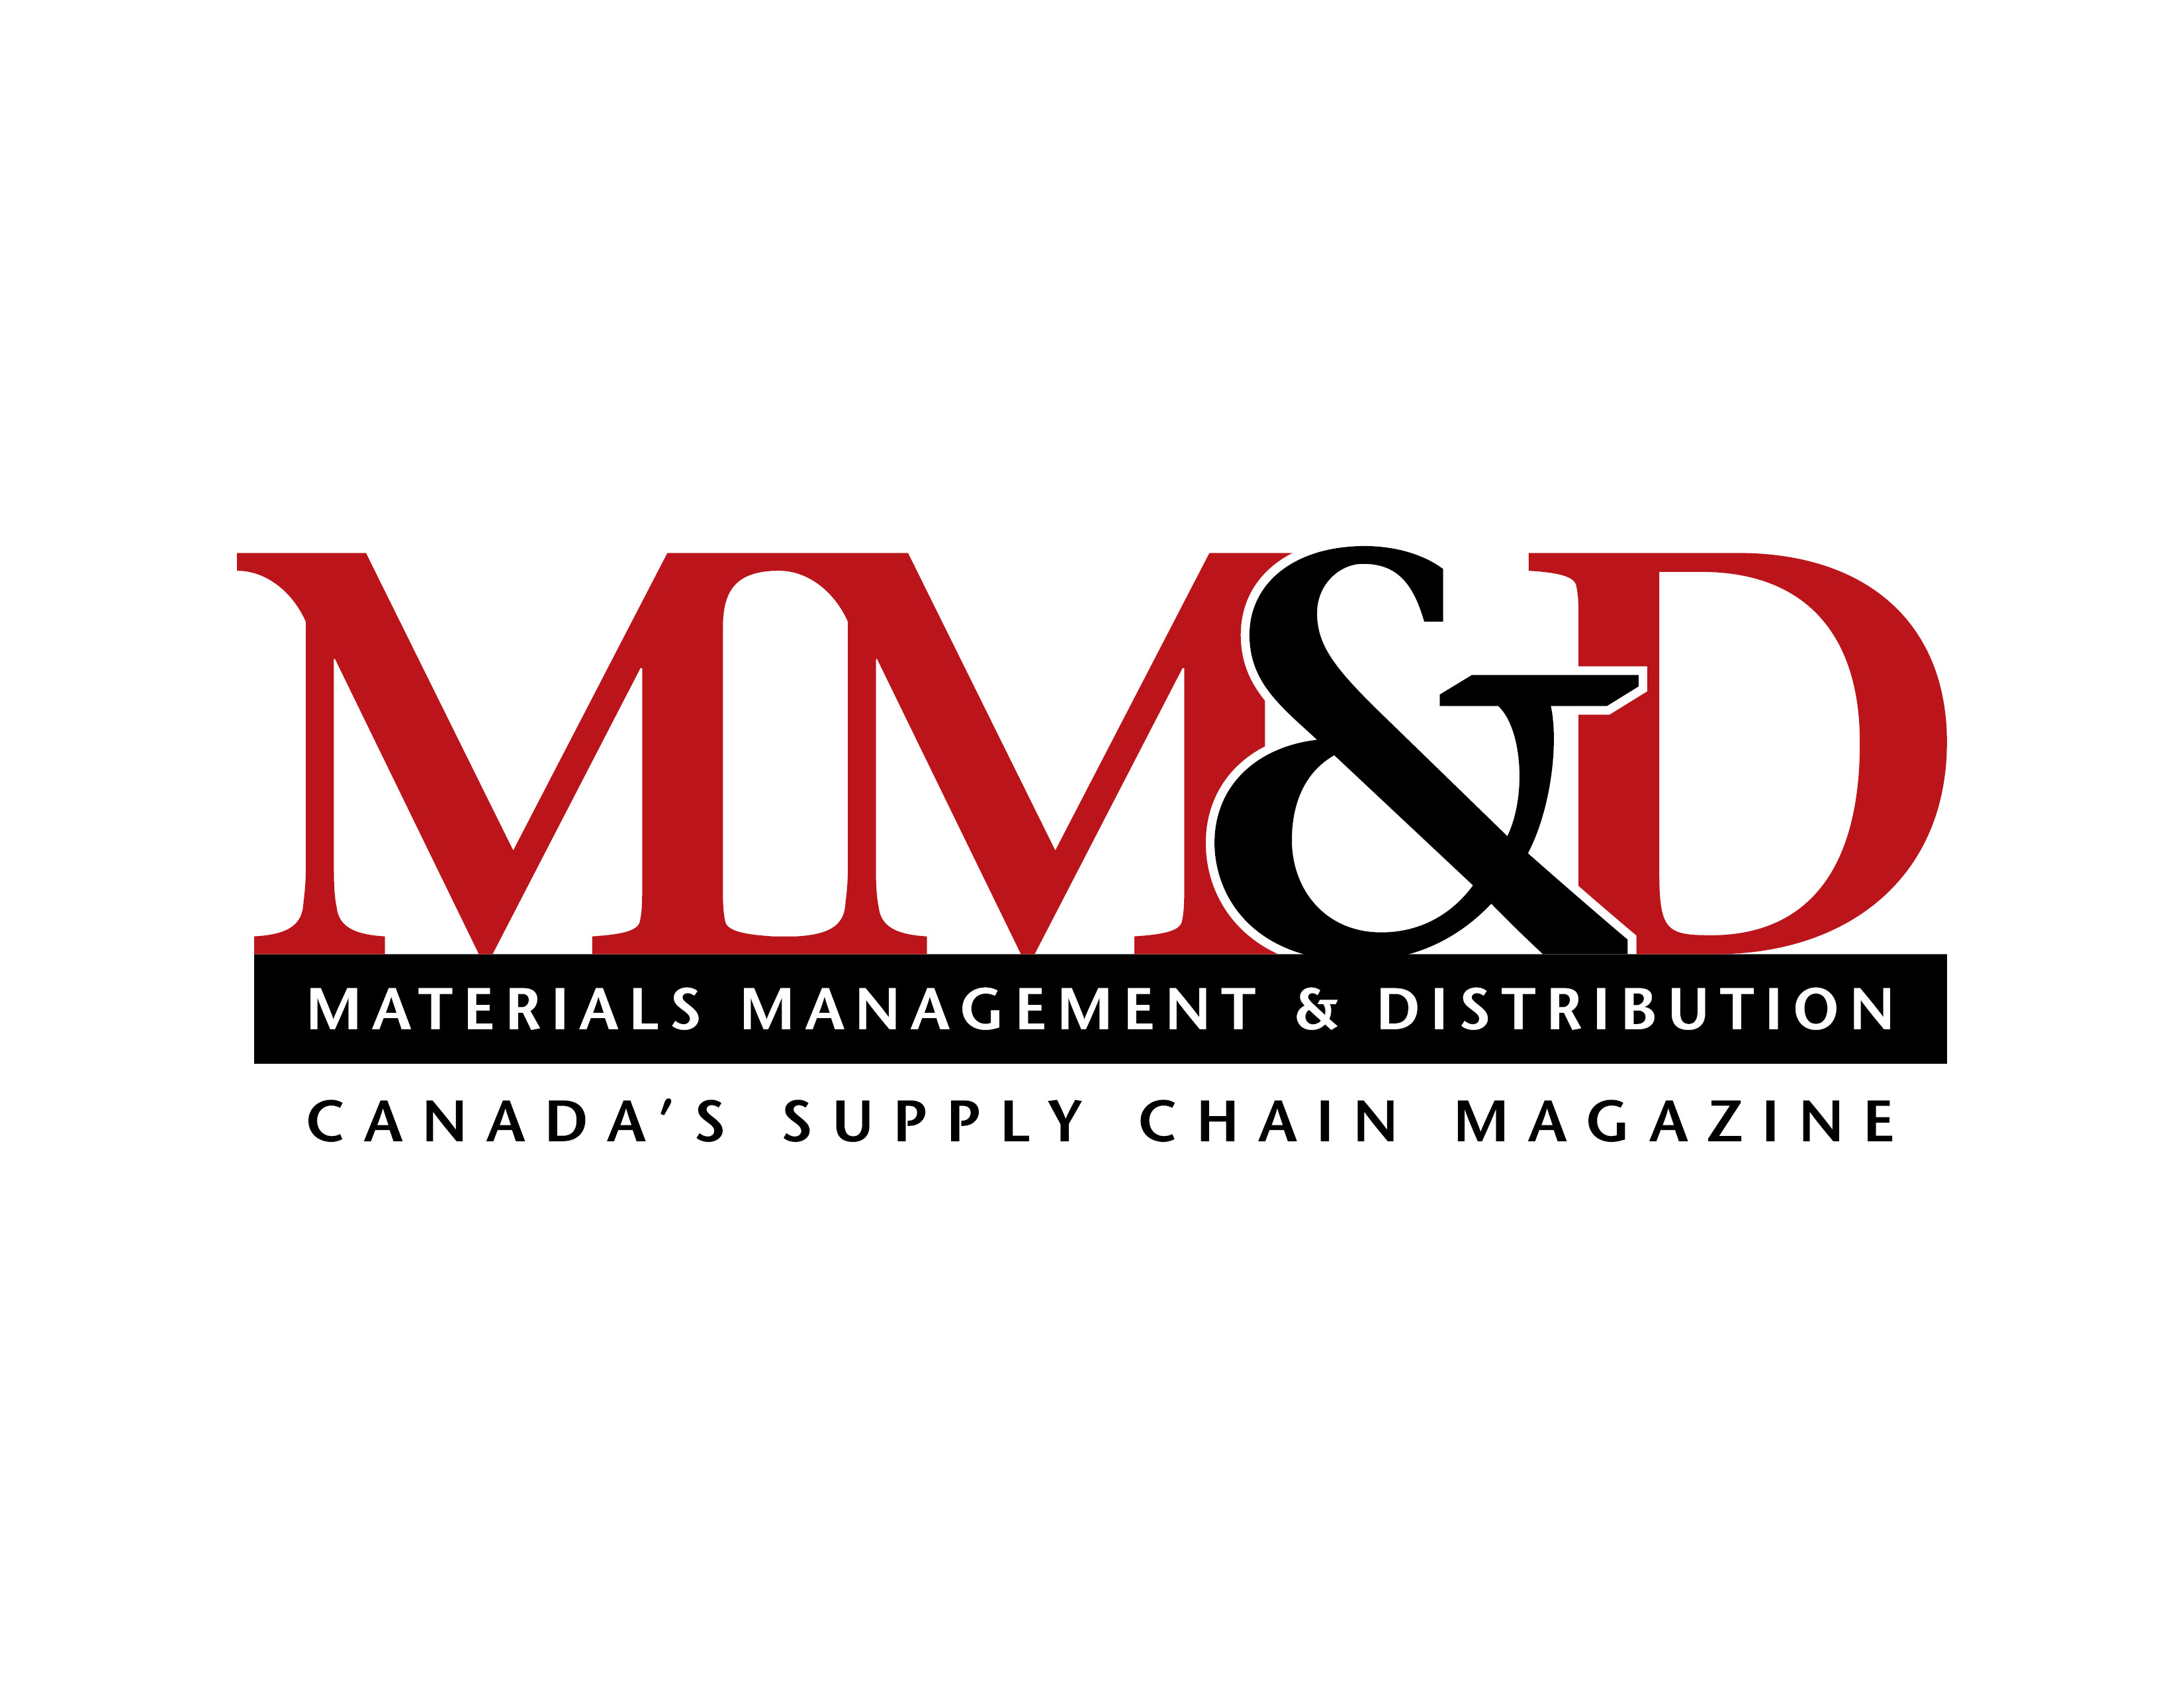 Materials Management & Distribution (MM&D) magazine